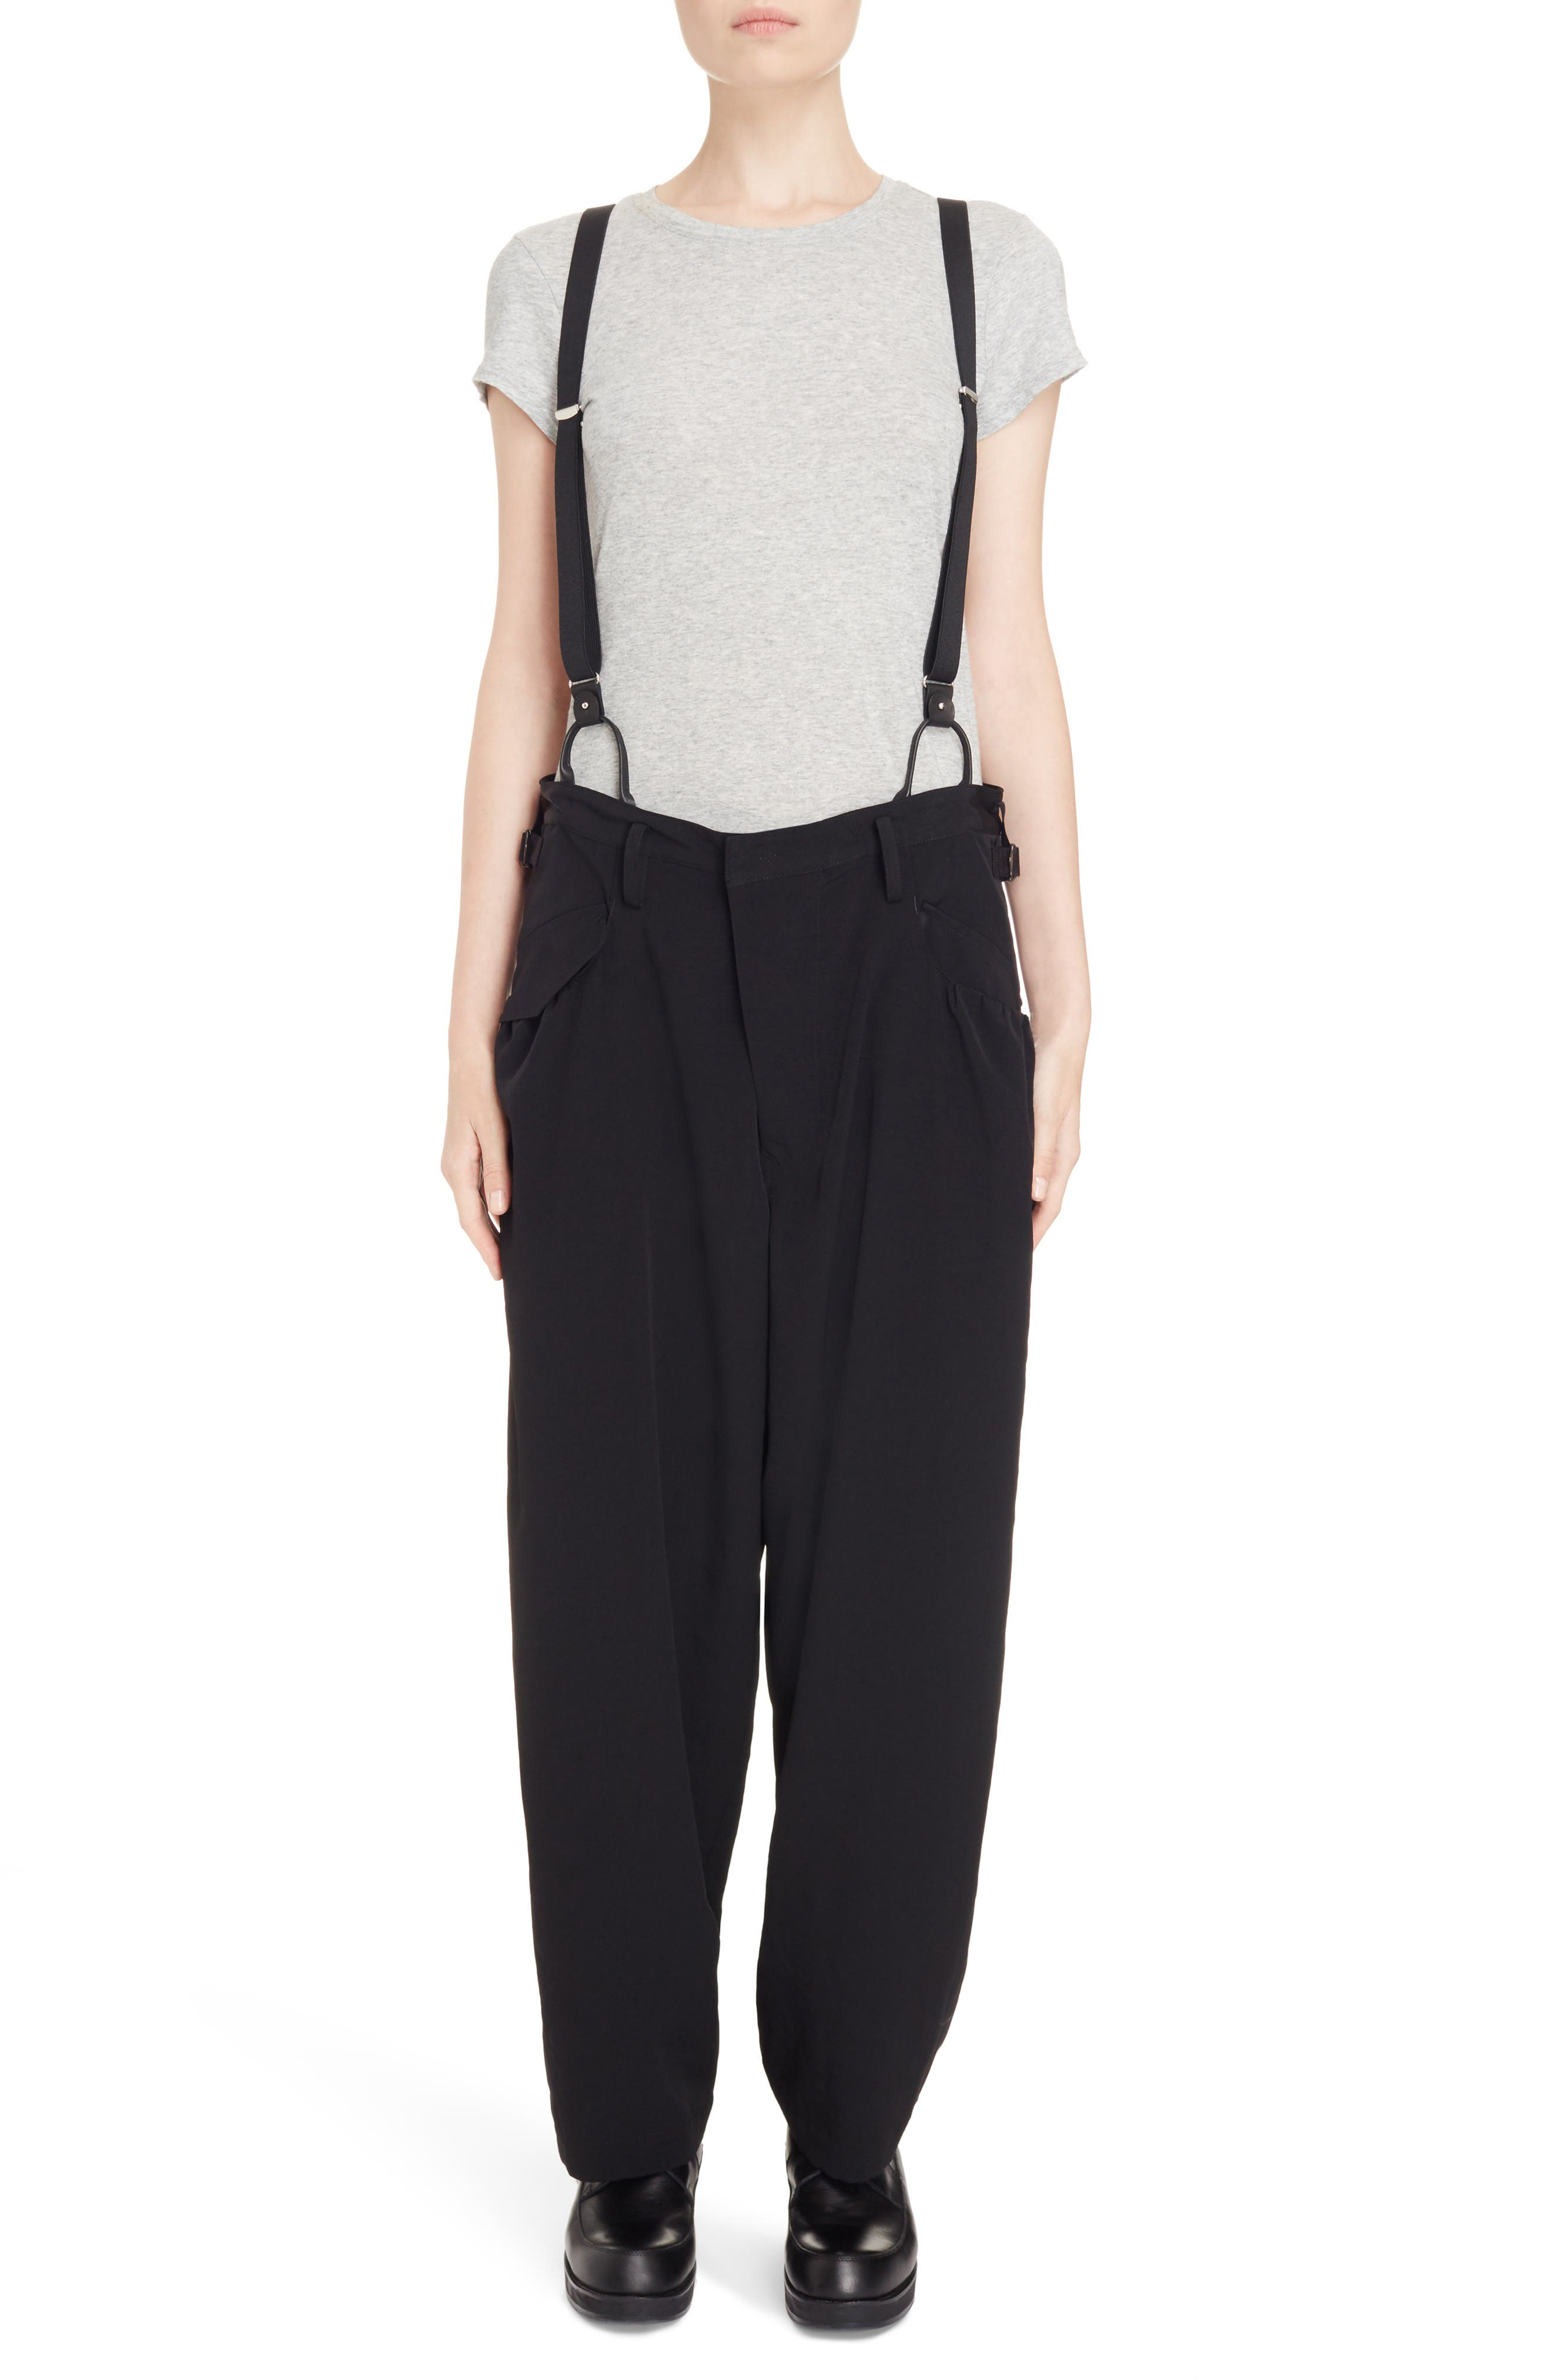 Alternate Image 1 Selected - Y's by Yohji Yamamoto Pants with Suspenders